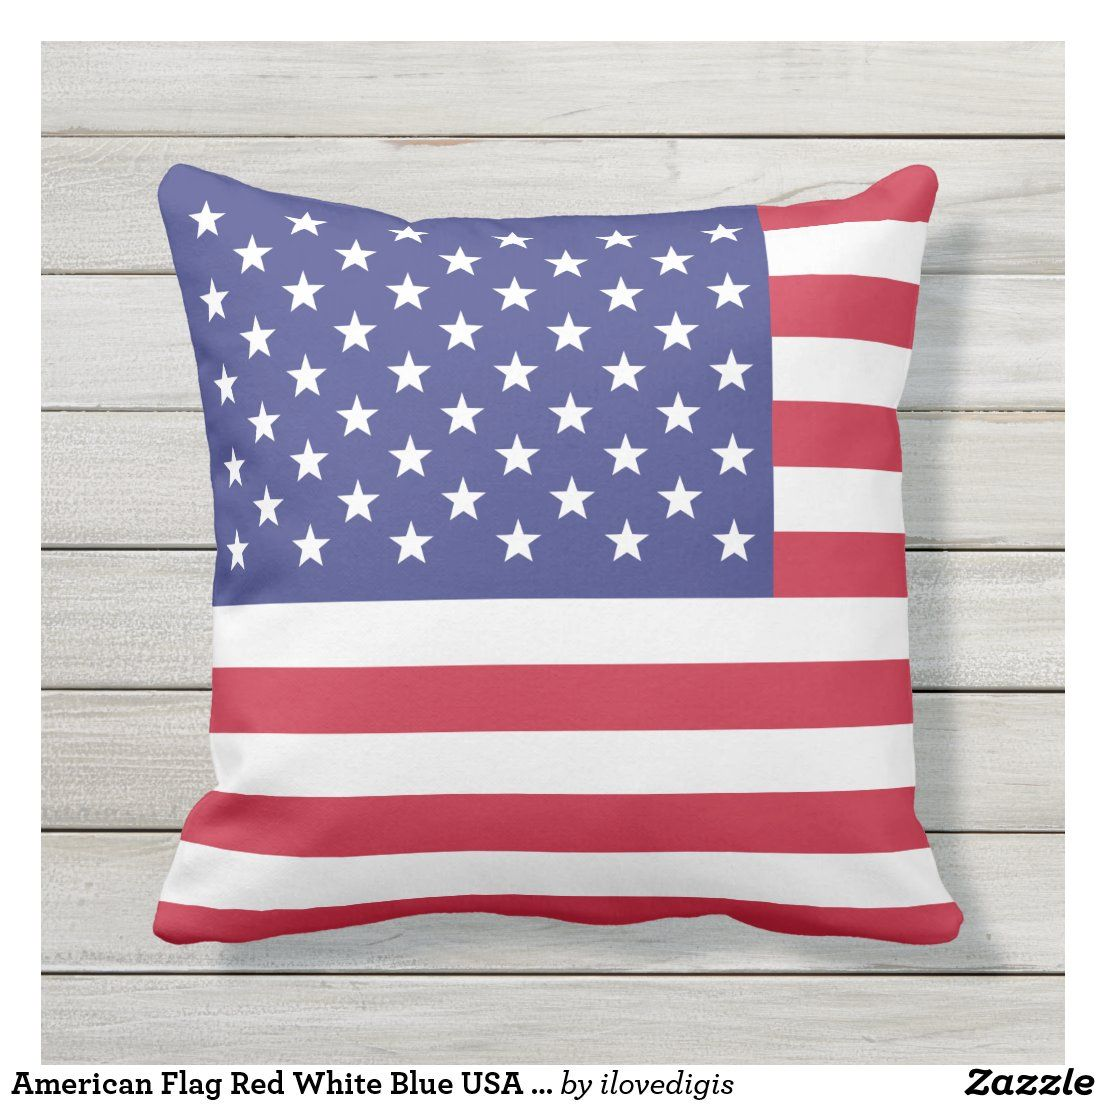 American Flag Red White Blue Usa Patriotic Outdoor Pillow Zazzle Com In 2020 American Flag Pillow Outdoor Pillows Usa Patriotic